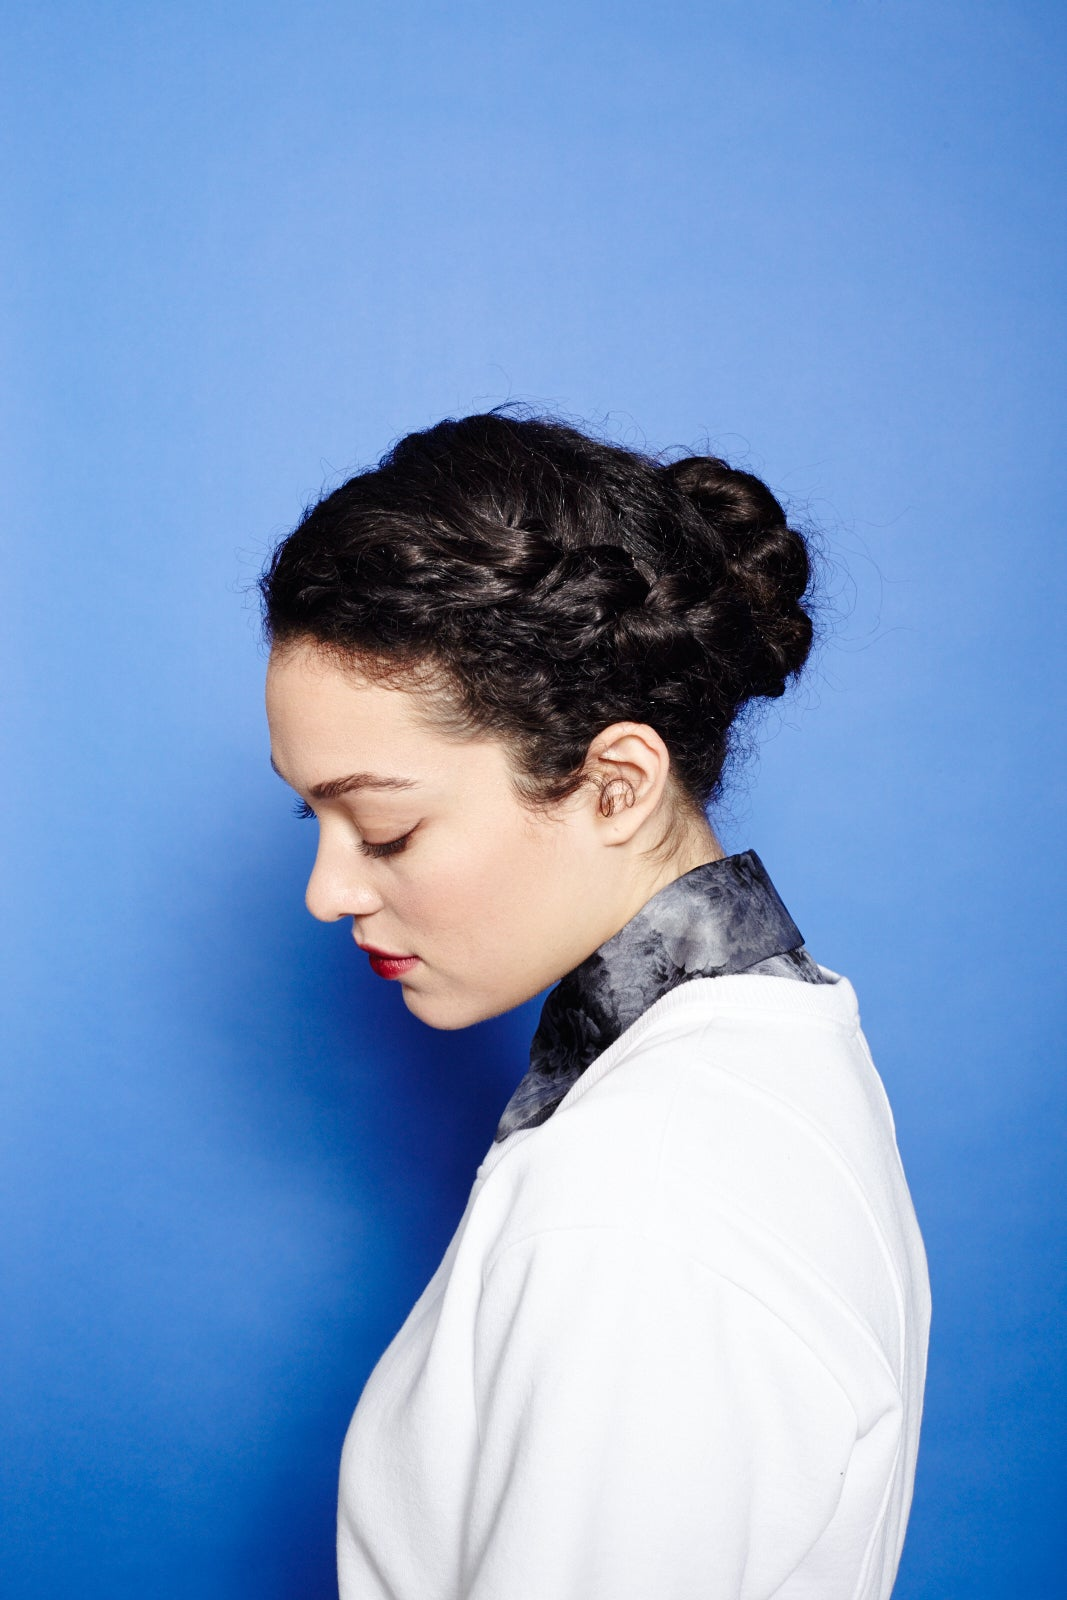 Swell How To Braid Curly Hair Cute Plait Styles Hairstyle Inspiration Daily Dogsangcom